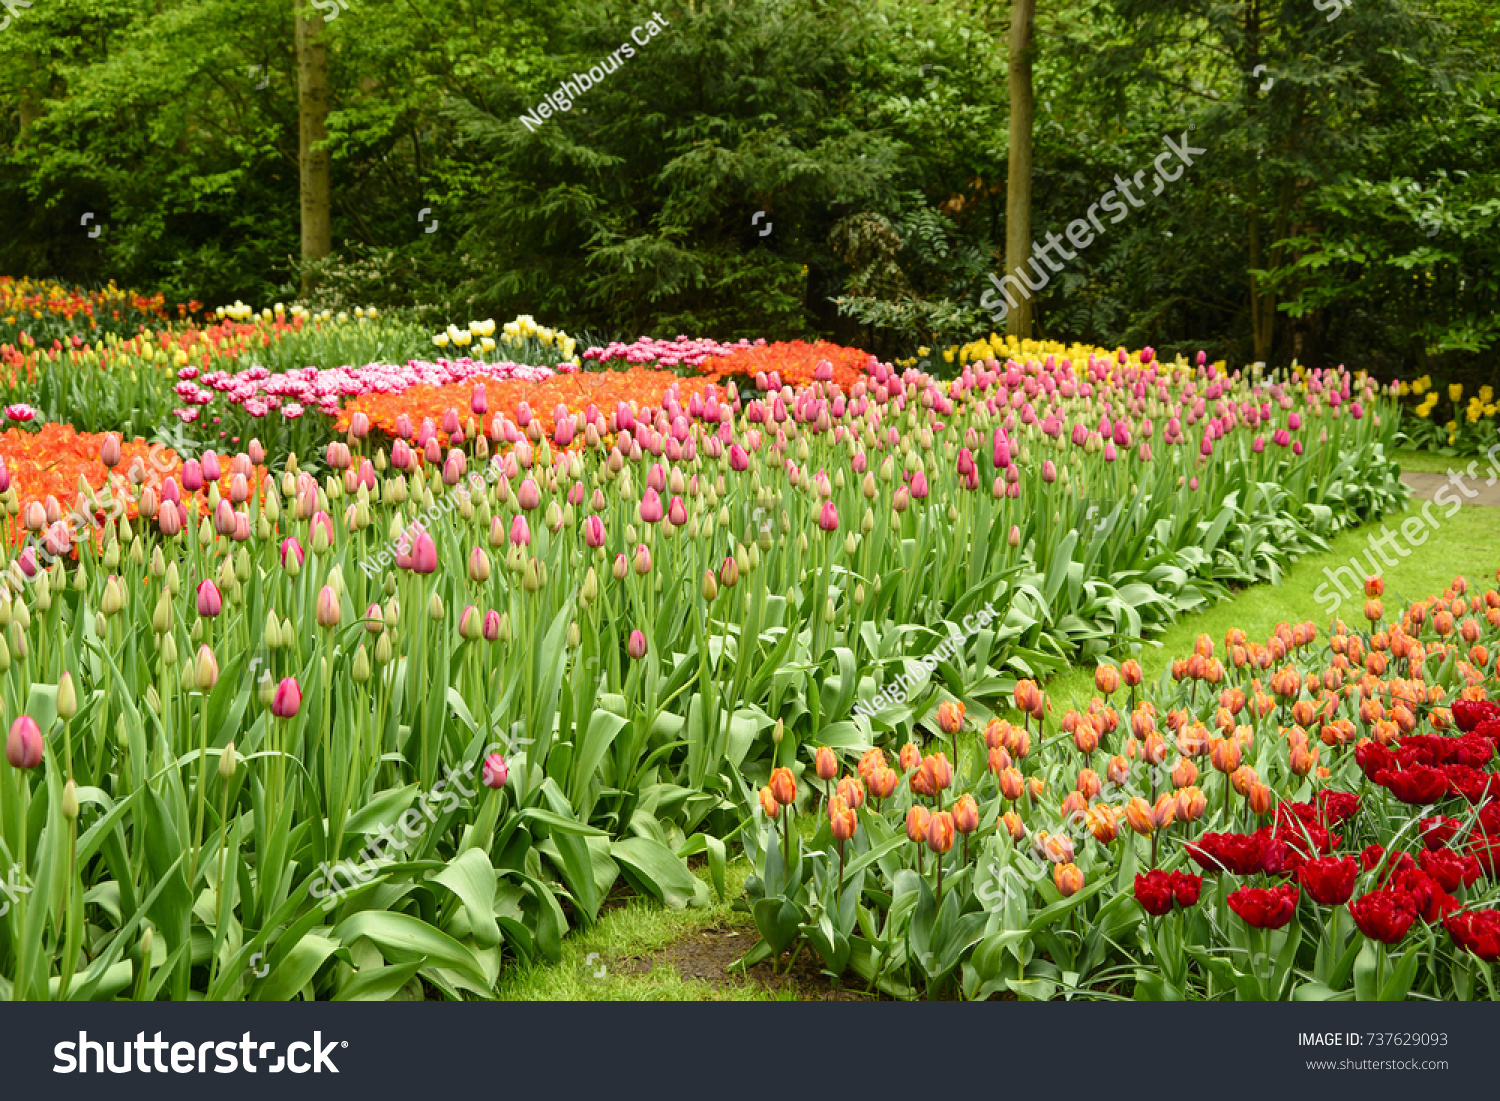 Spring flower beds tulips tulipa park stock photo edit now spring flower beds with tulips tulipa in a park colorful spring flowers in mightylinksfo